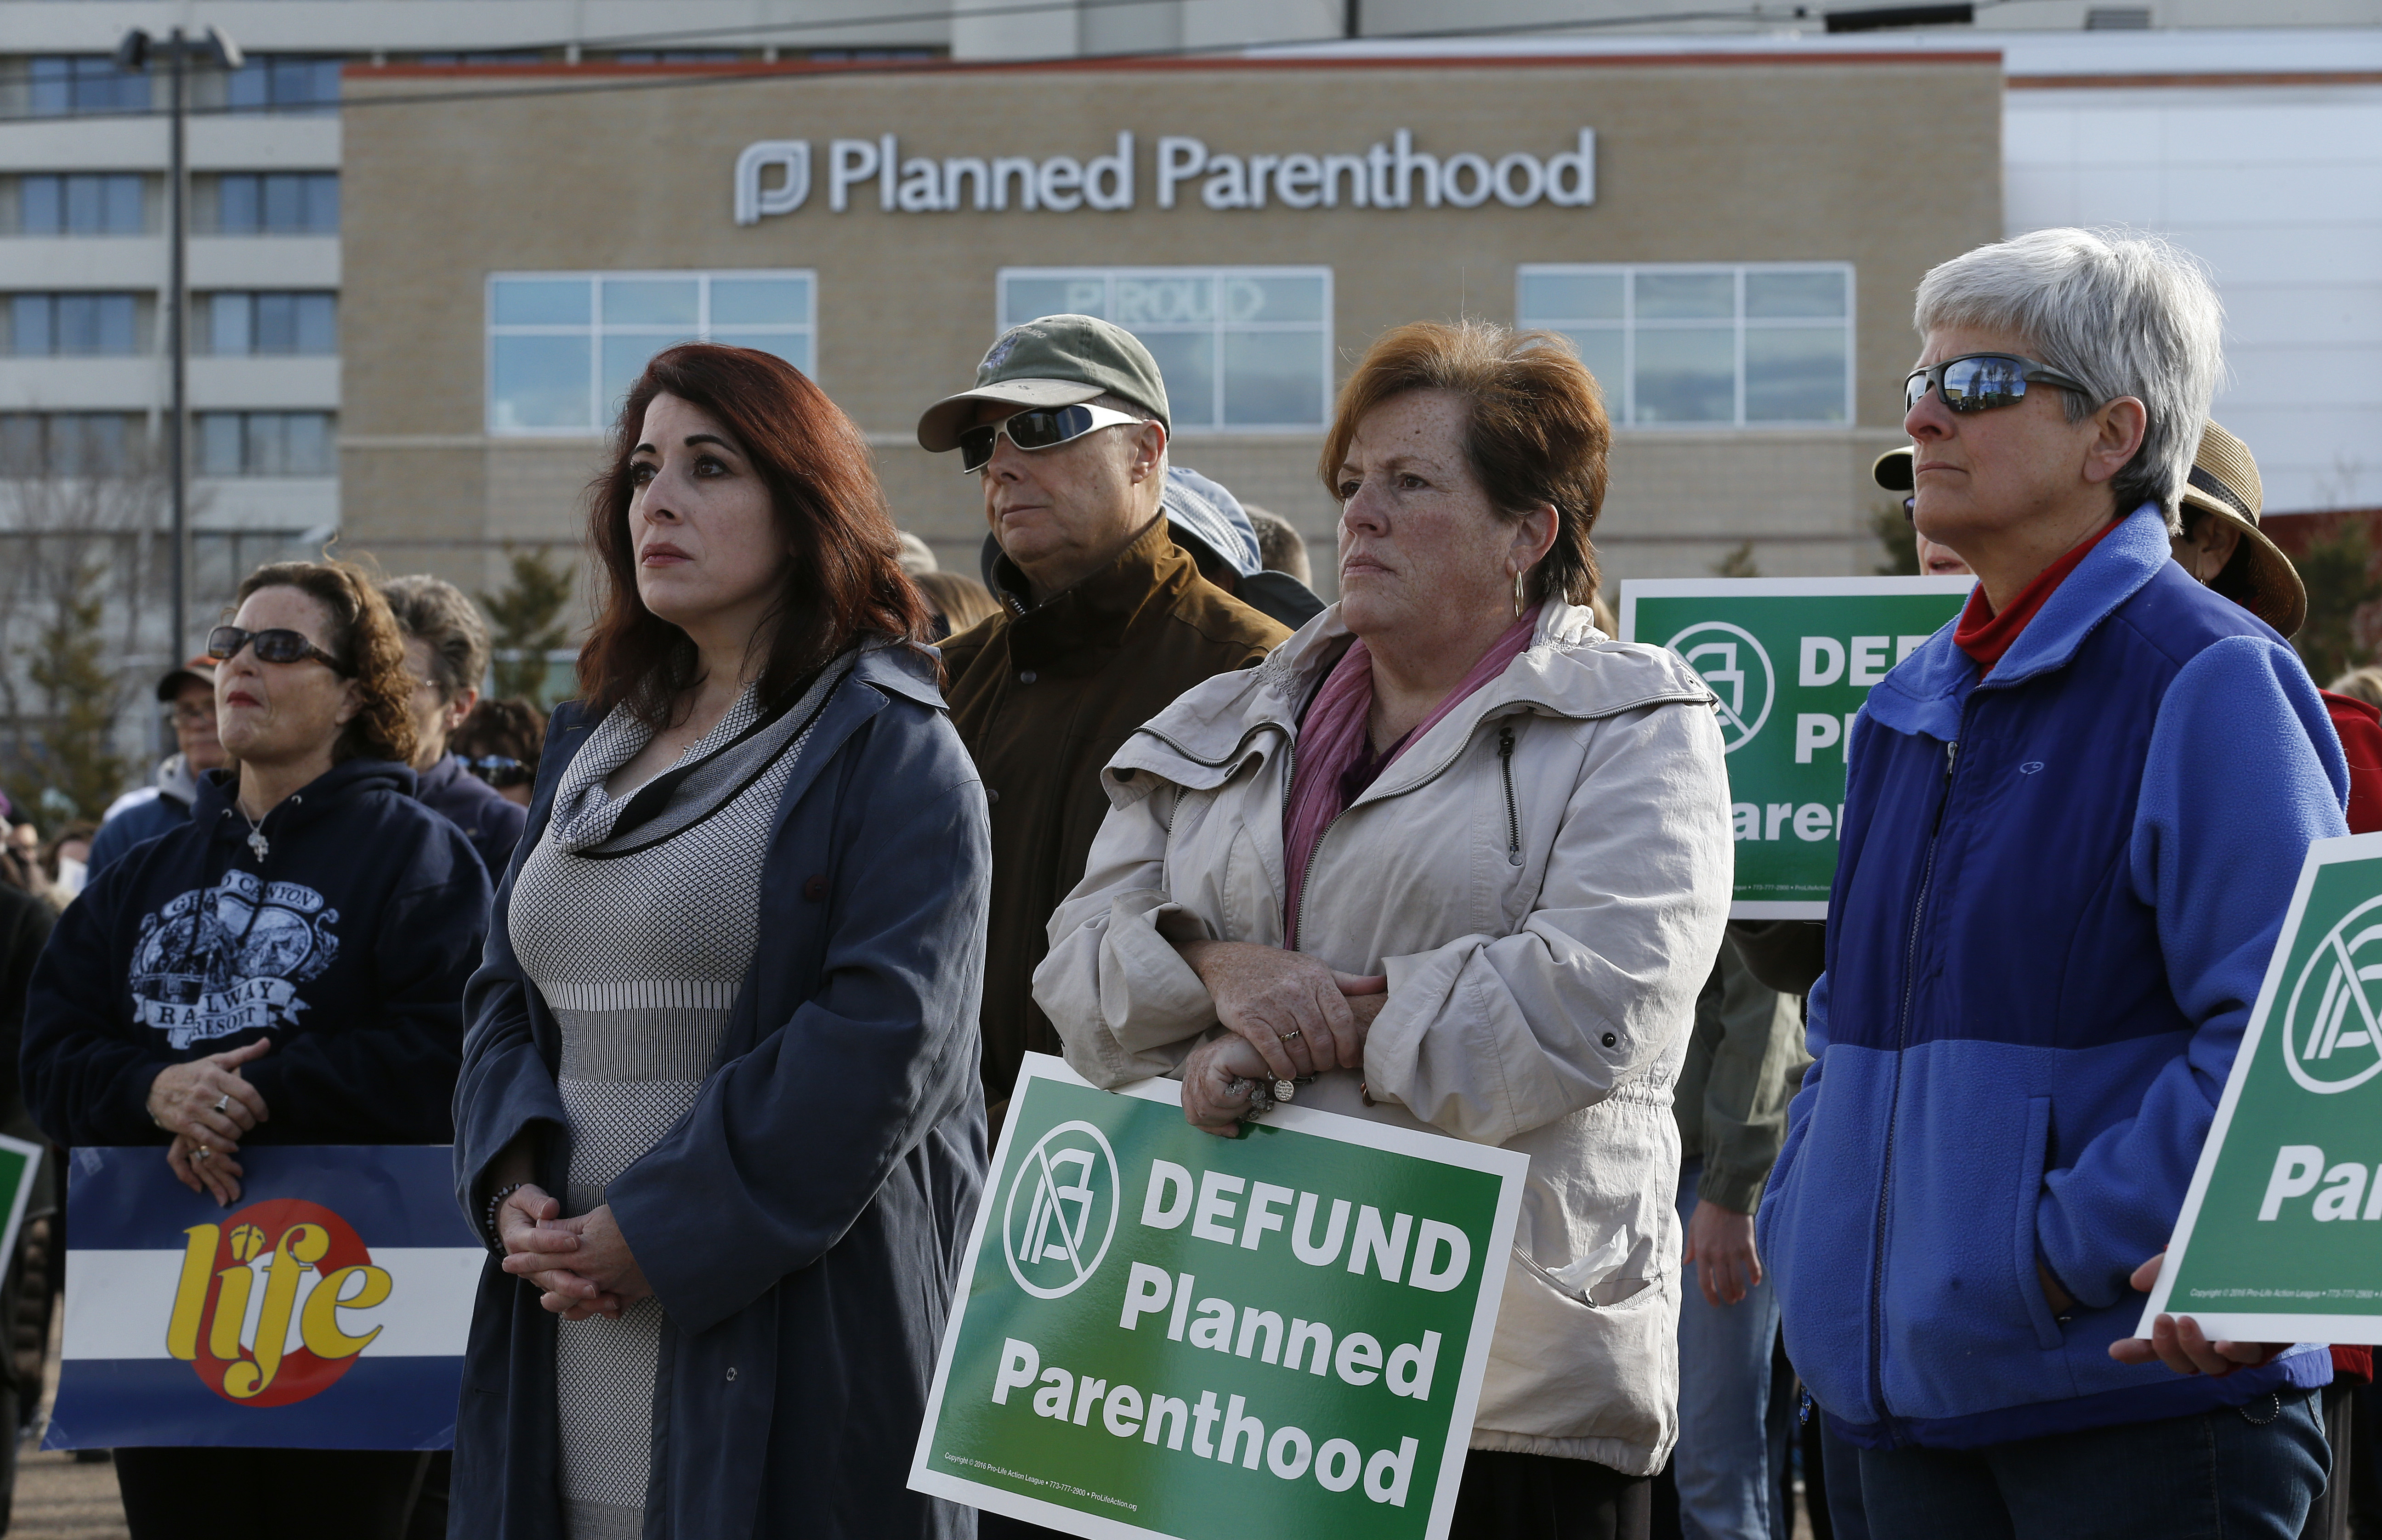 Ex-clinic managers for Planned Parenthood say it treats